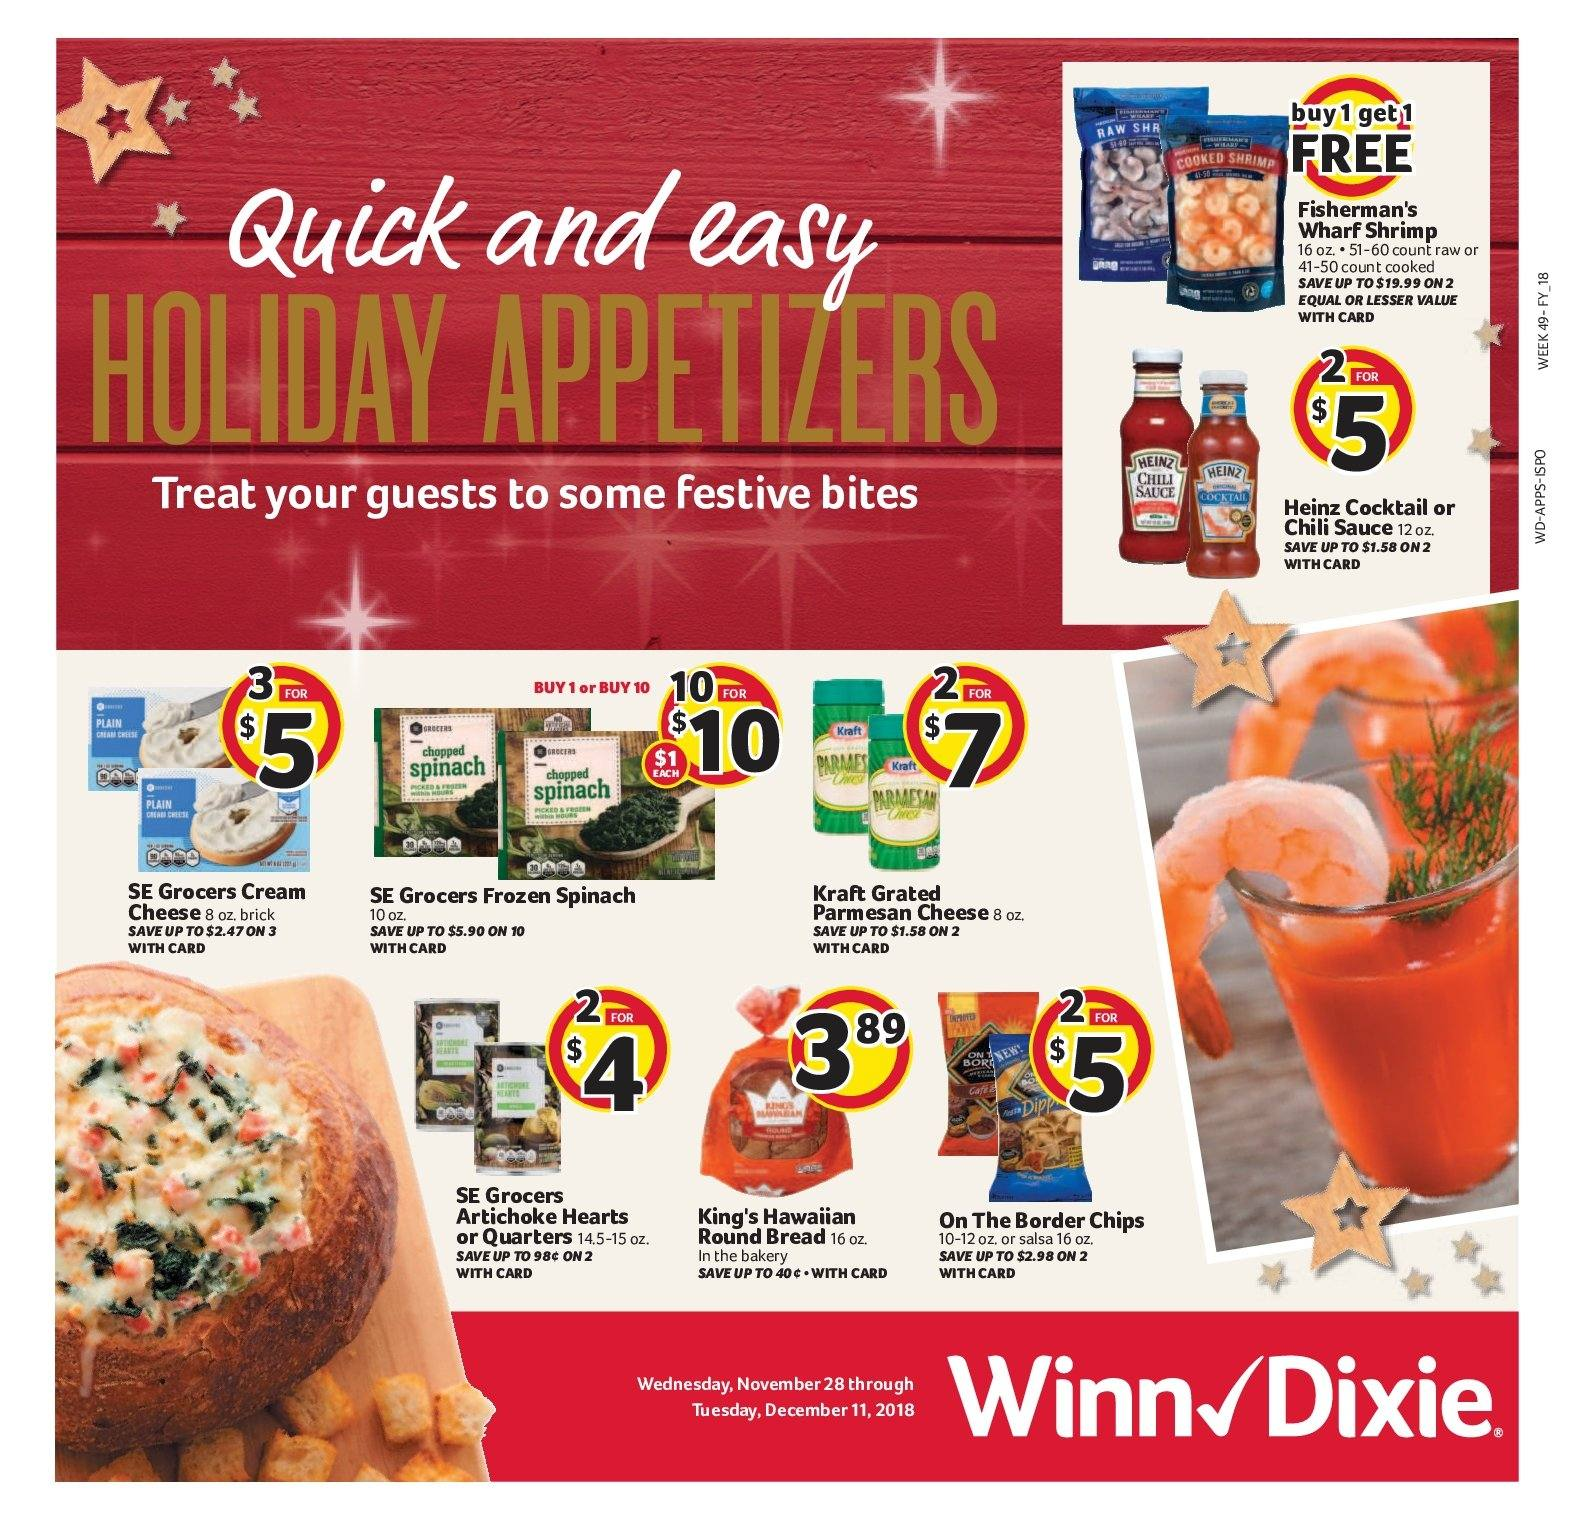 Winn Dixie Flyer  - 11.28.2018 - 12.11.2018. Page 1.